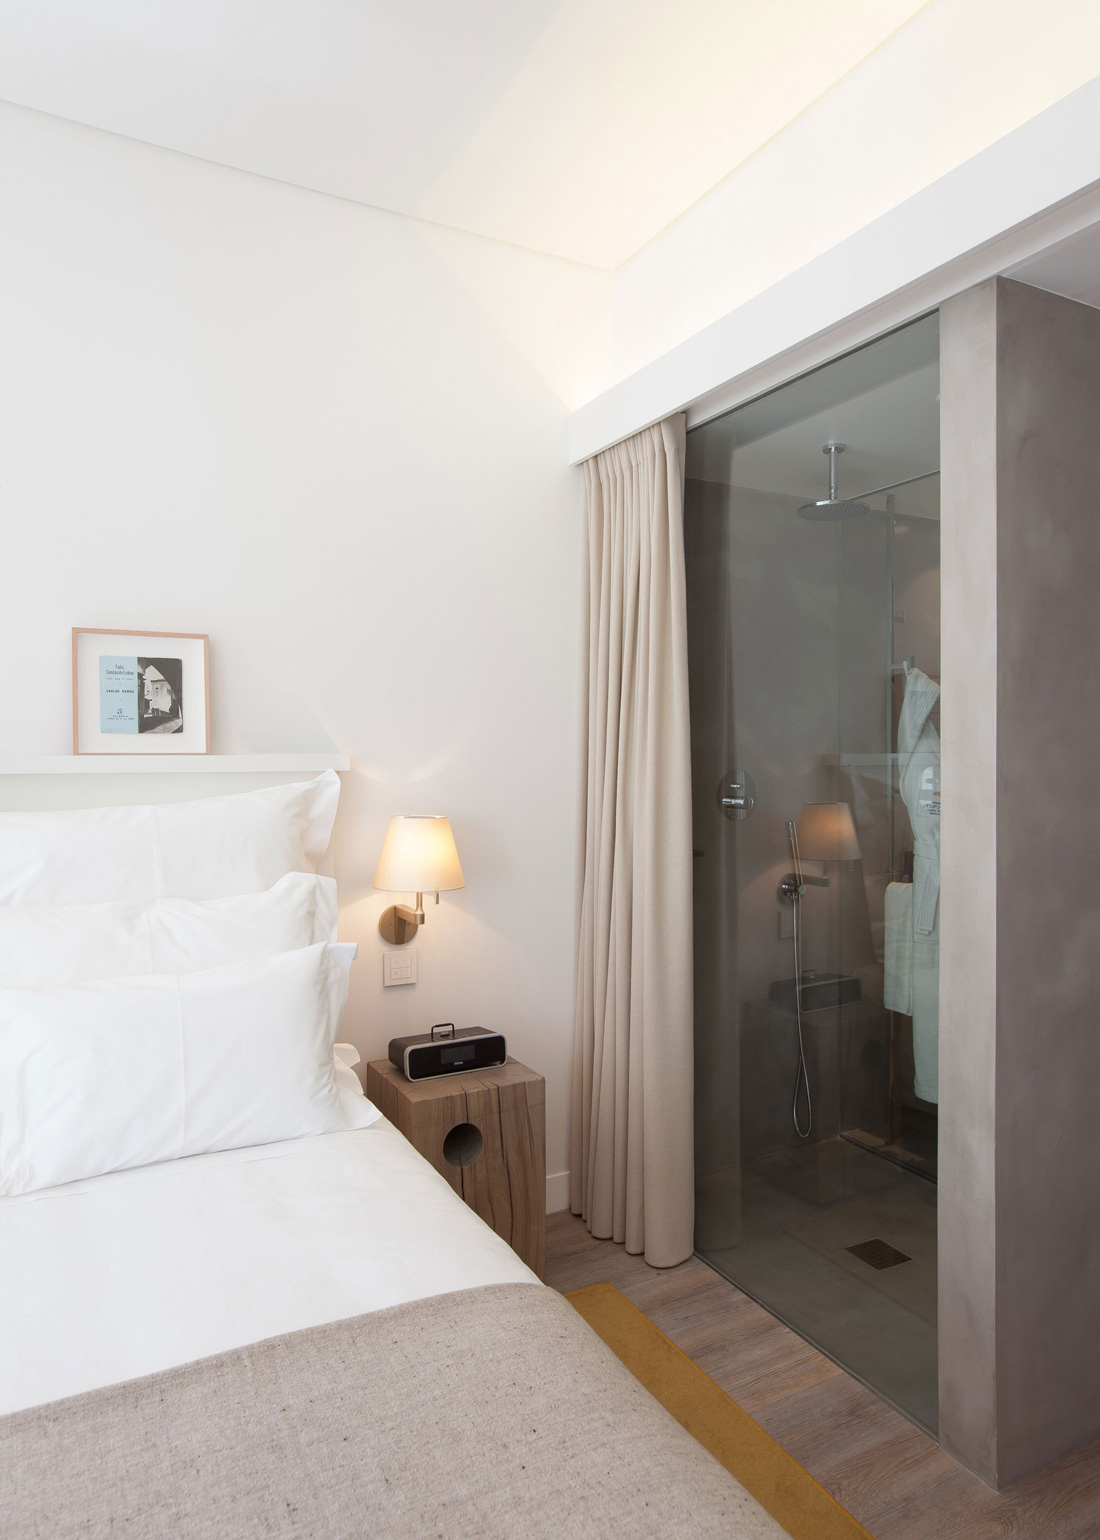 Shower Room, Glass Door, Boutique Hotel in the Heart of Alfama, Lisbon